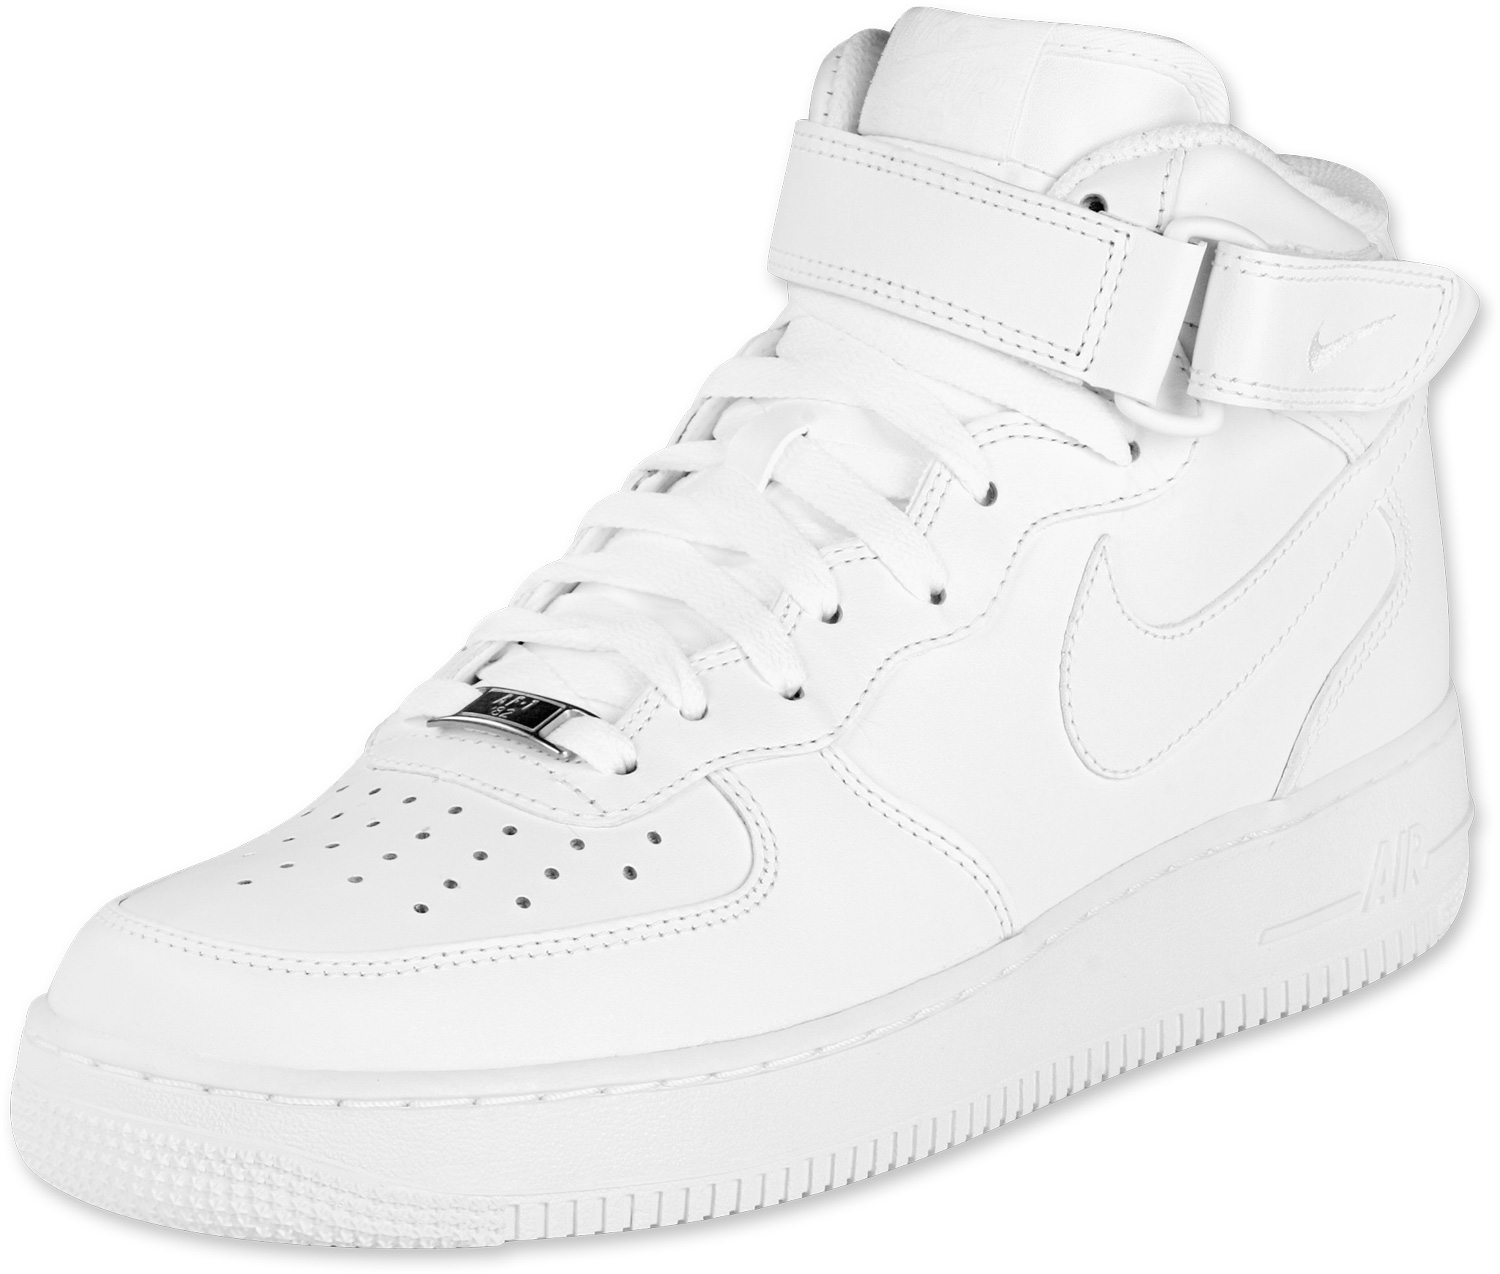 1500x1274 Air Force 1 Mid Shoes White